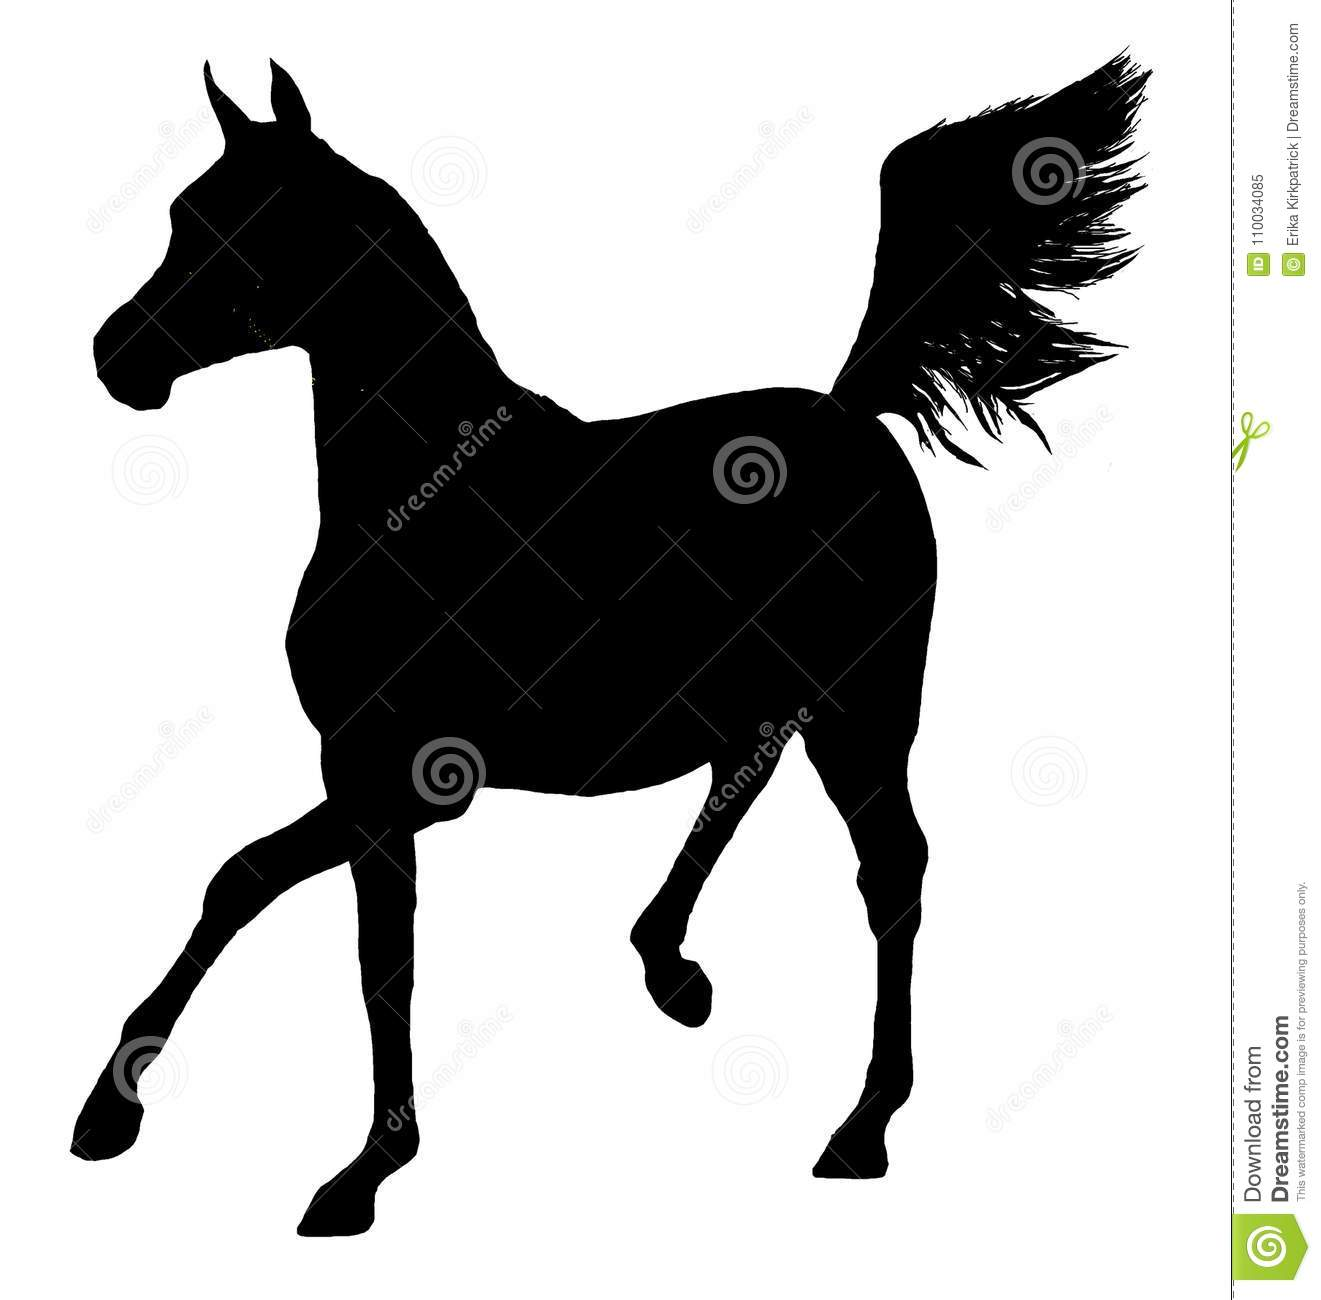 Arabian Horse Silhouette Stock Illustrations 1 495 Arabian Horse Silhouette Stock Illustrations Vectors Clipart Dreamstime